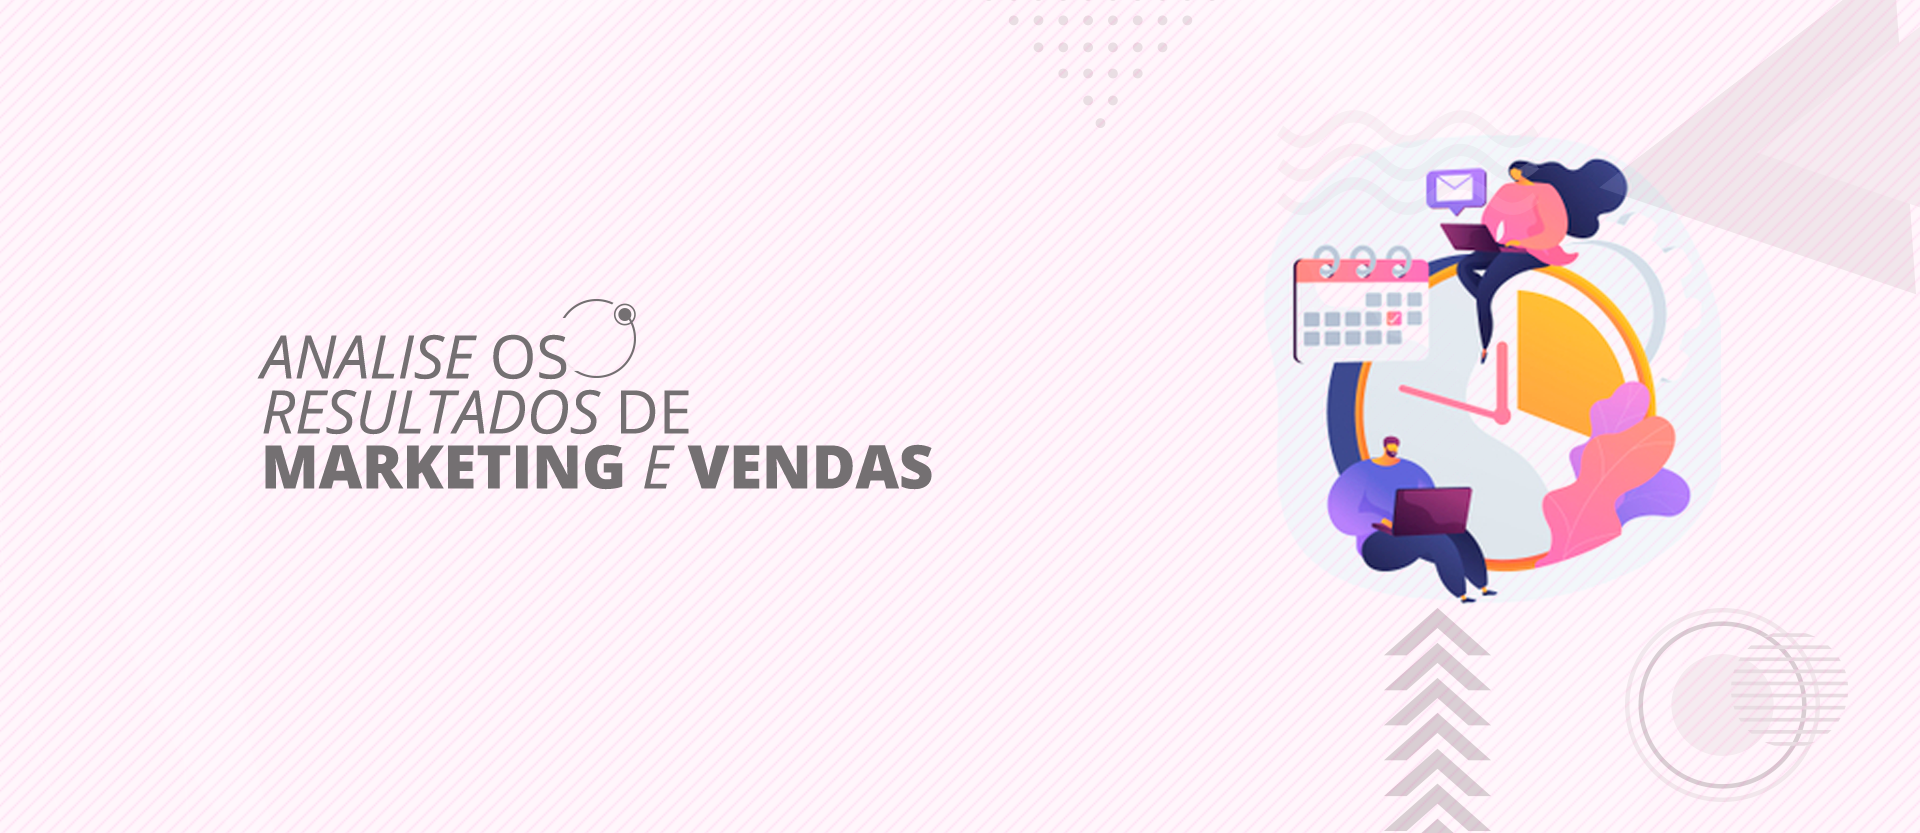 Marketing para Empresas de serviço - Analise os resultados de marketing e vendas